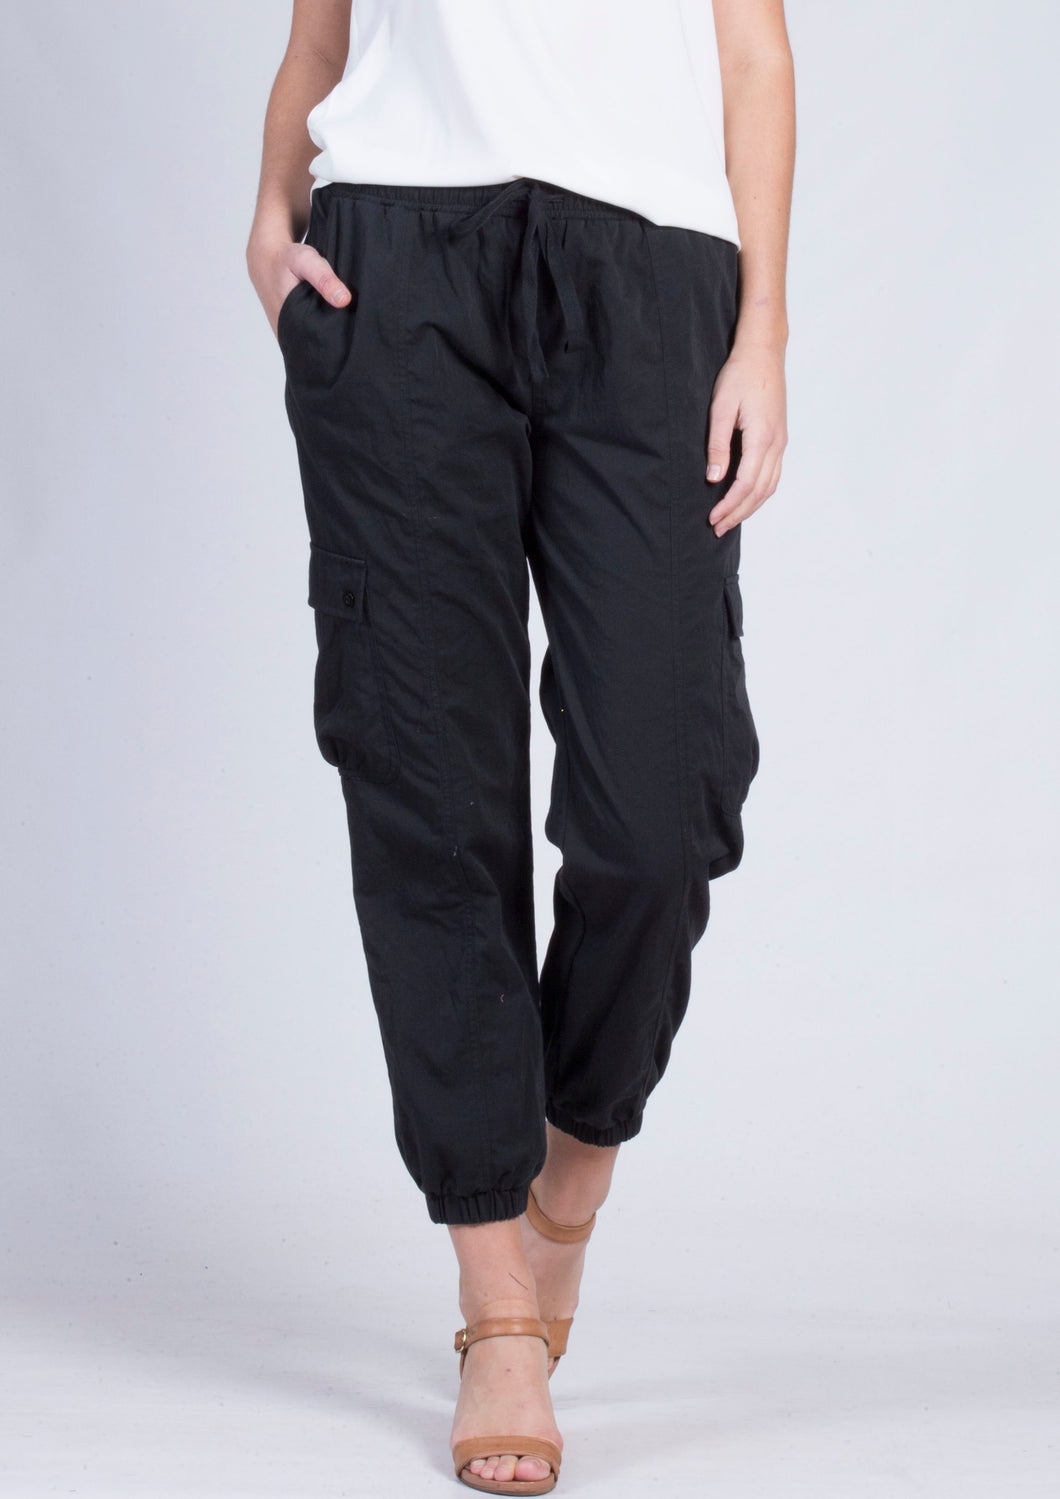 YW2168-1SS Cargo Joggers (Pack) New Arrival